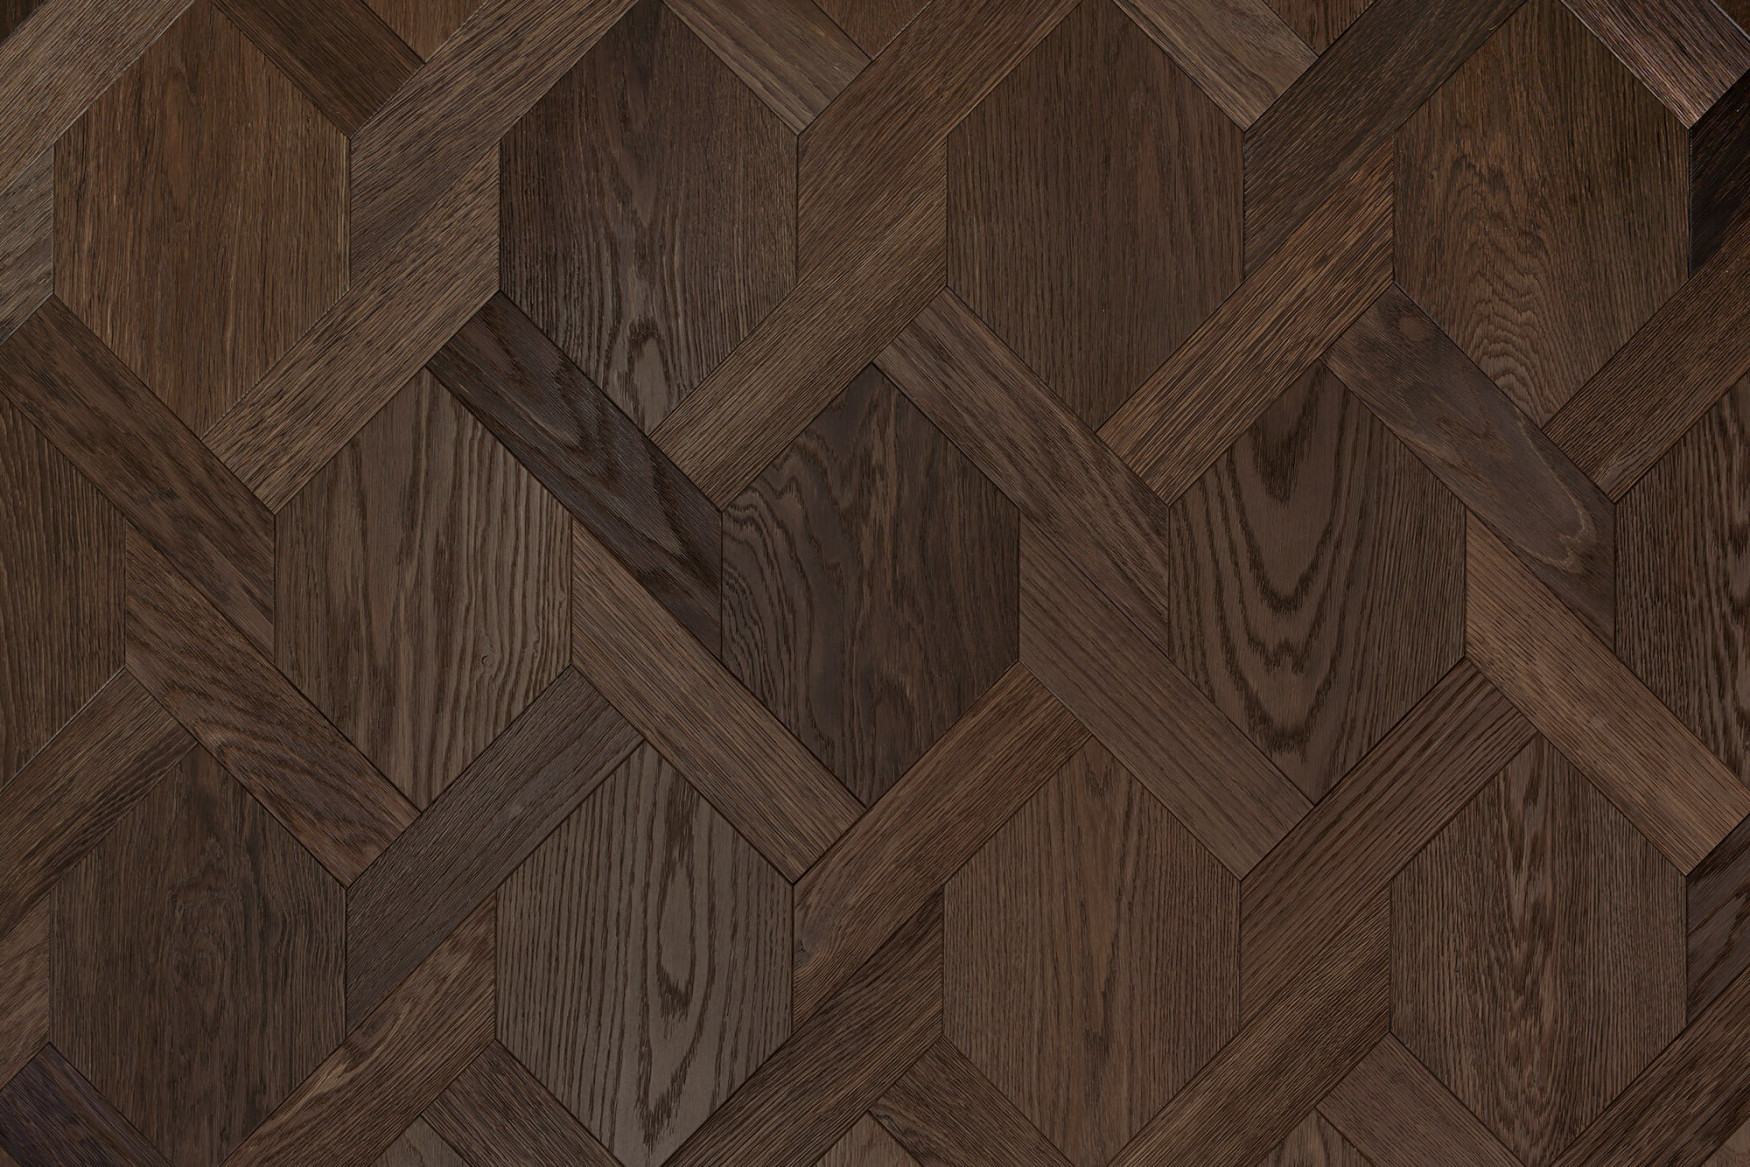 Element7-Parquet-ParisianDark-MansionWeave_AJ_883_262